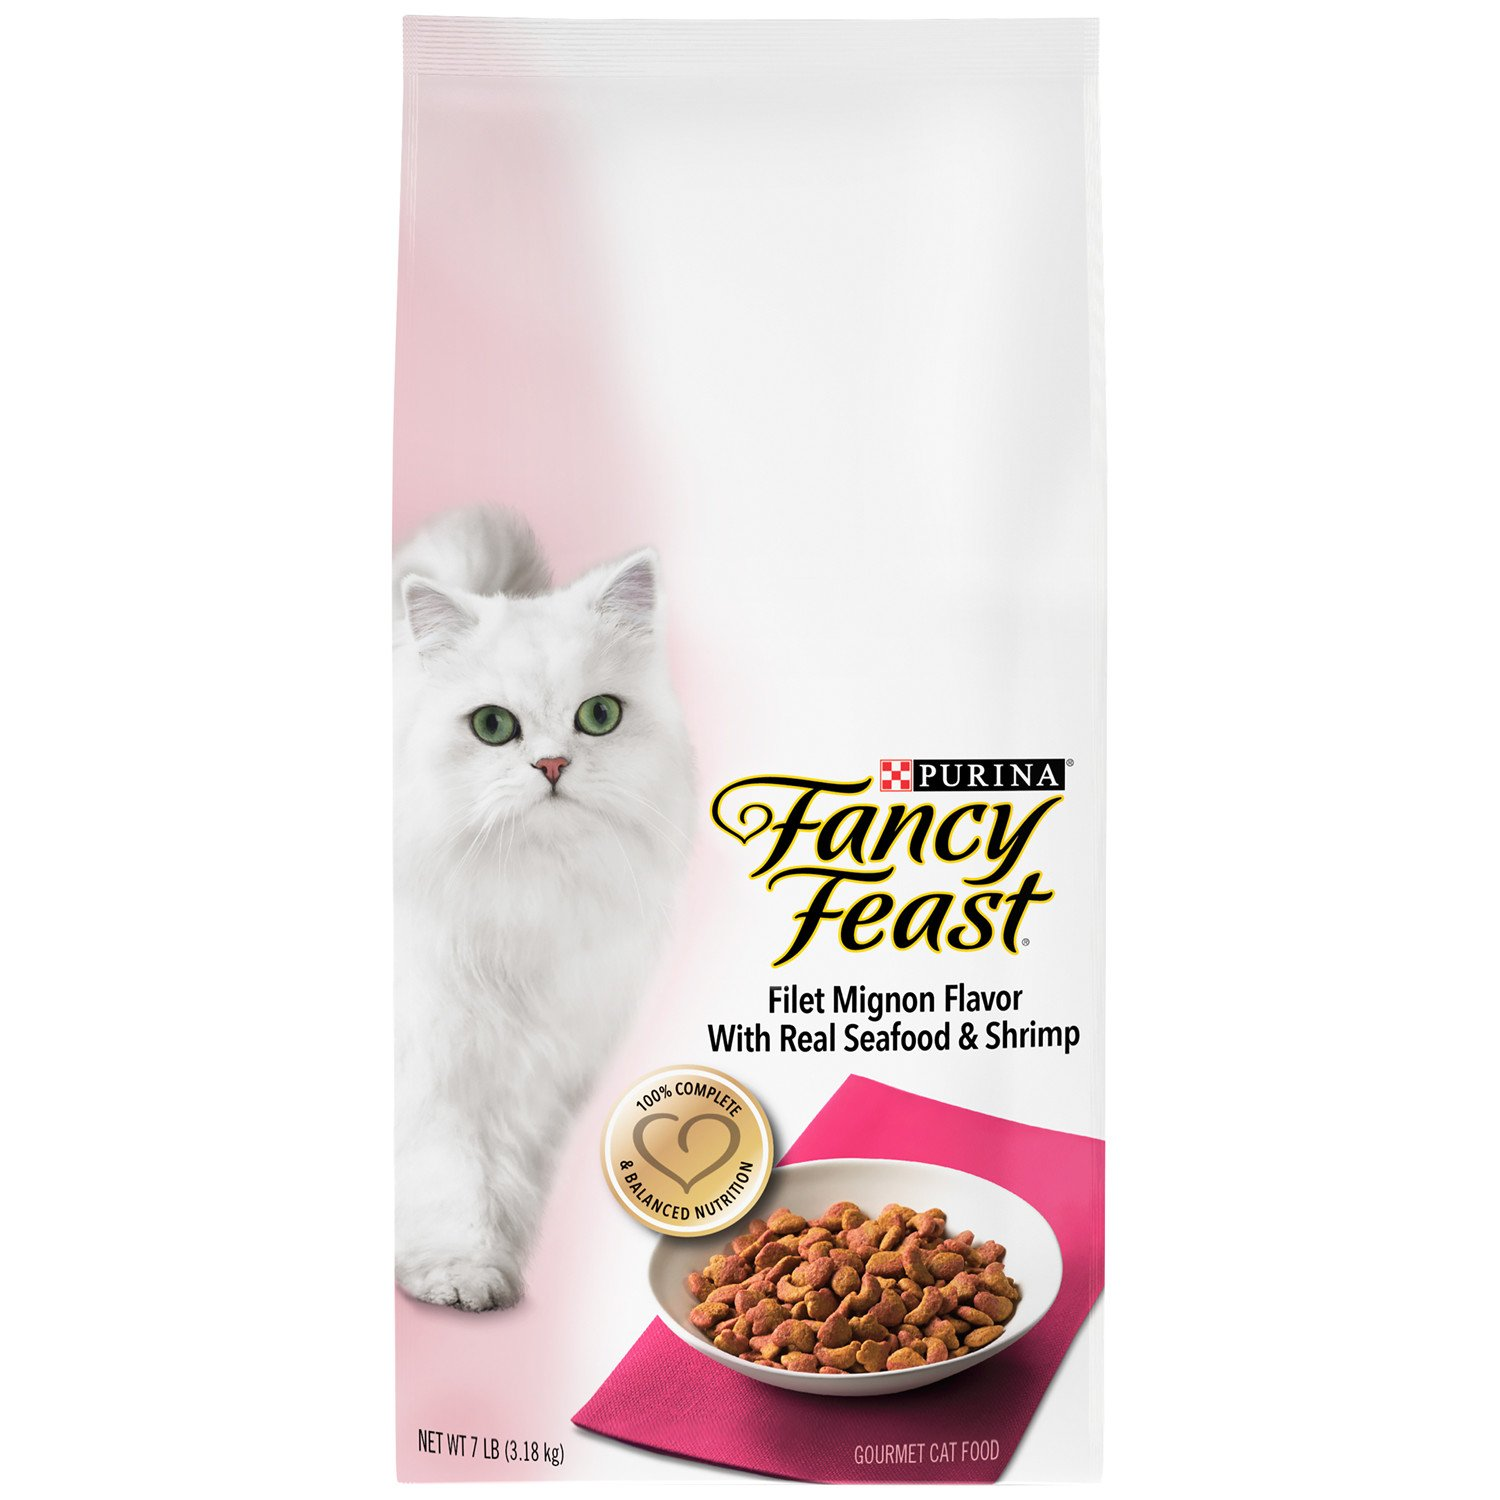 7 lb. Bag Purina Fancy Feast Gourmet Dry Cat Food Filet Mignon Flavor with Real Seafood and Shrimp